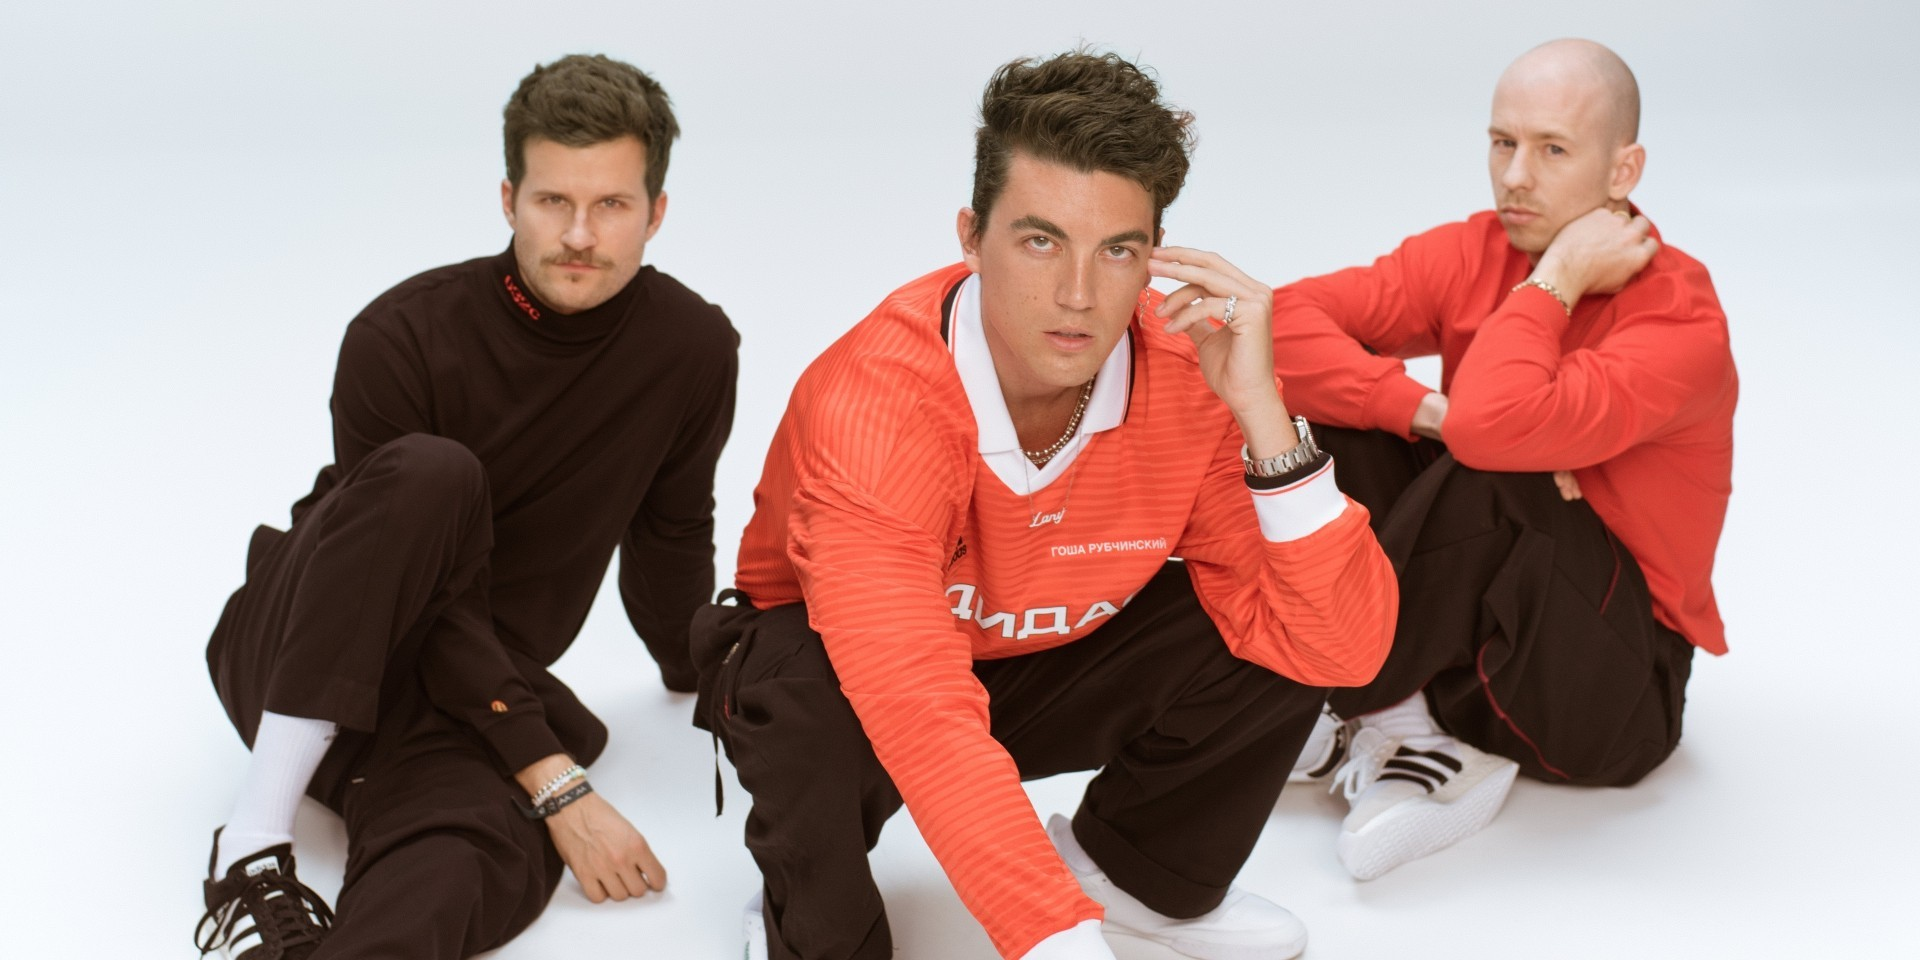 LANY's second album Malibu Nights is out now